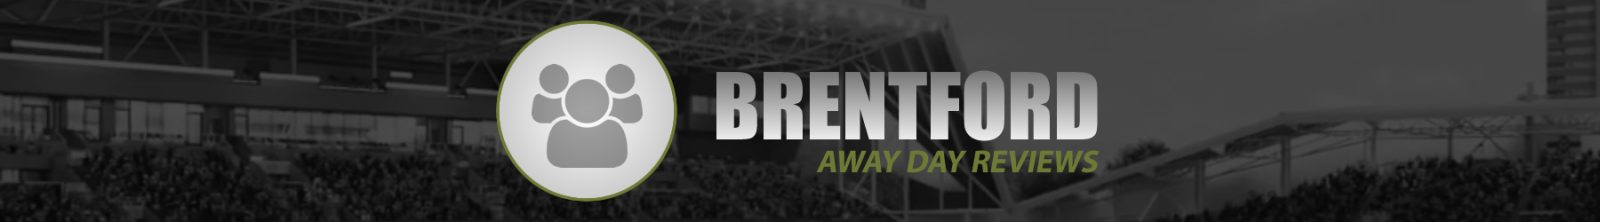 Review Brentford